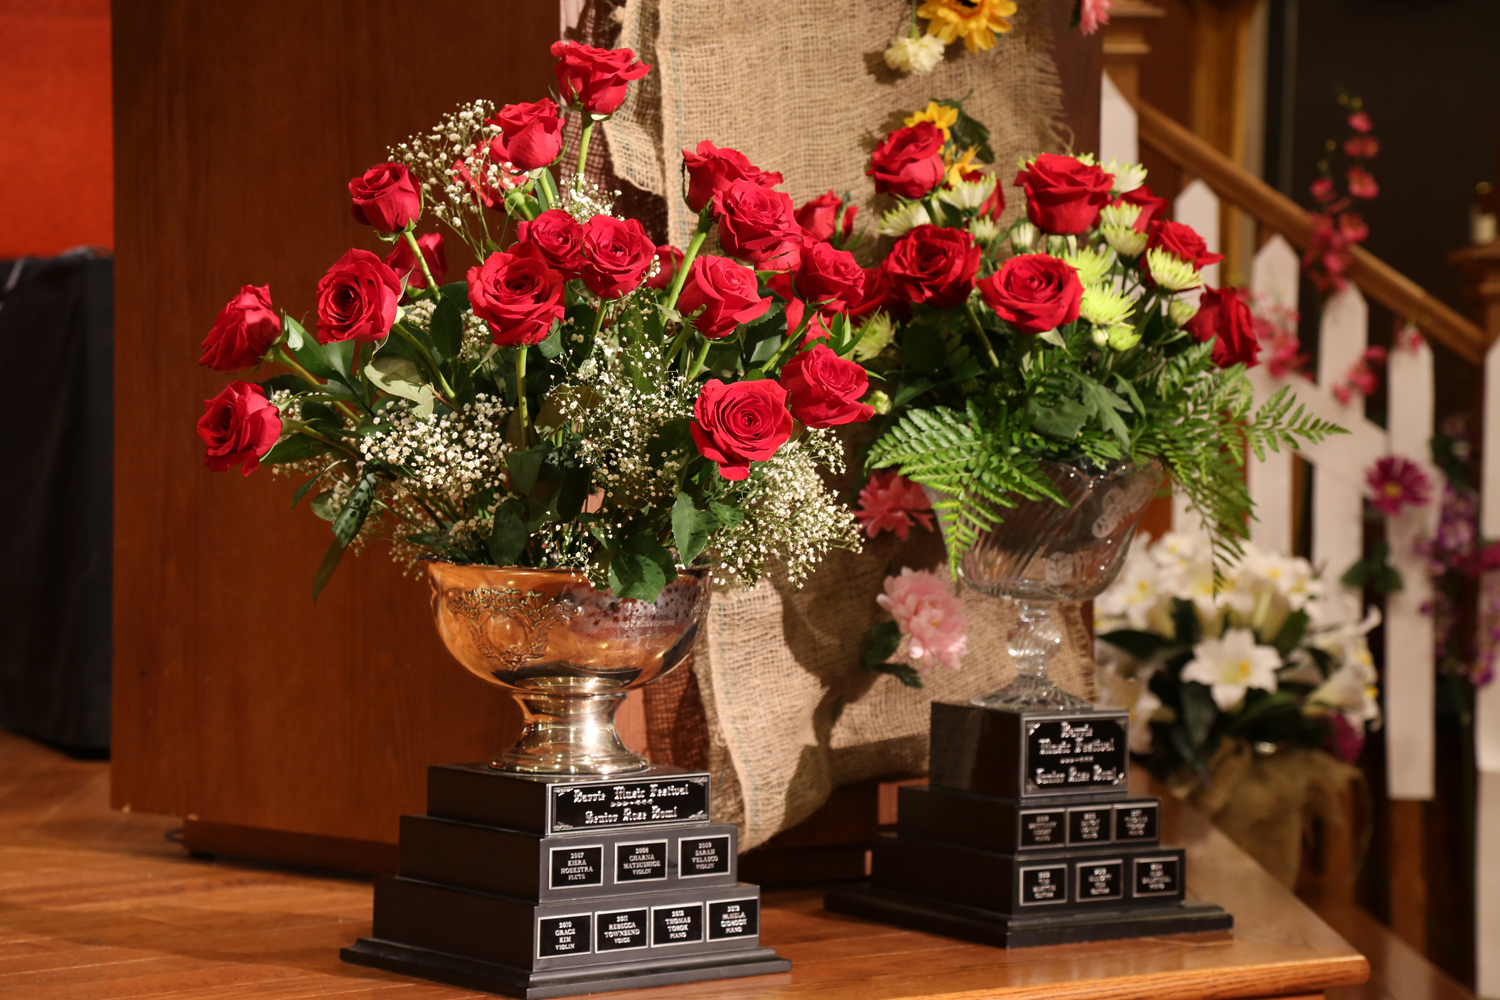 barrie music festival rose bowl awards